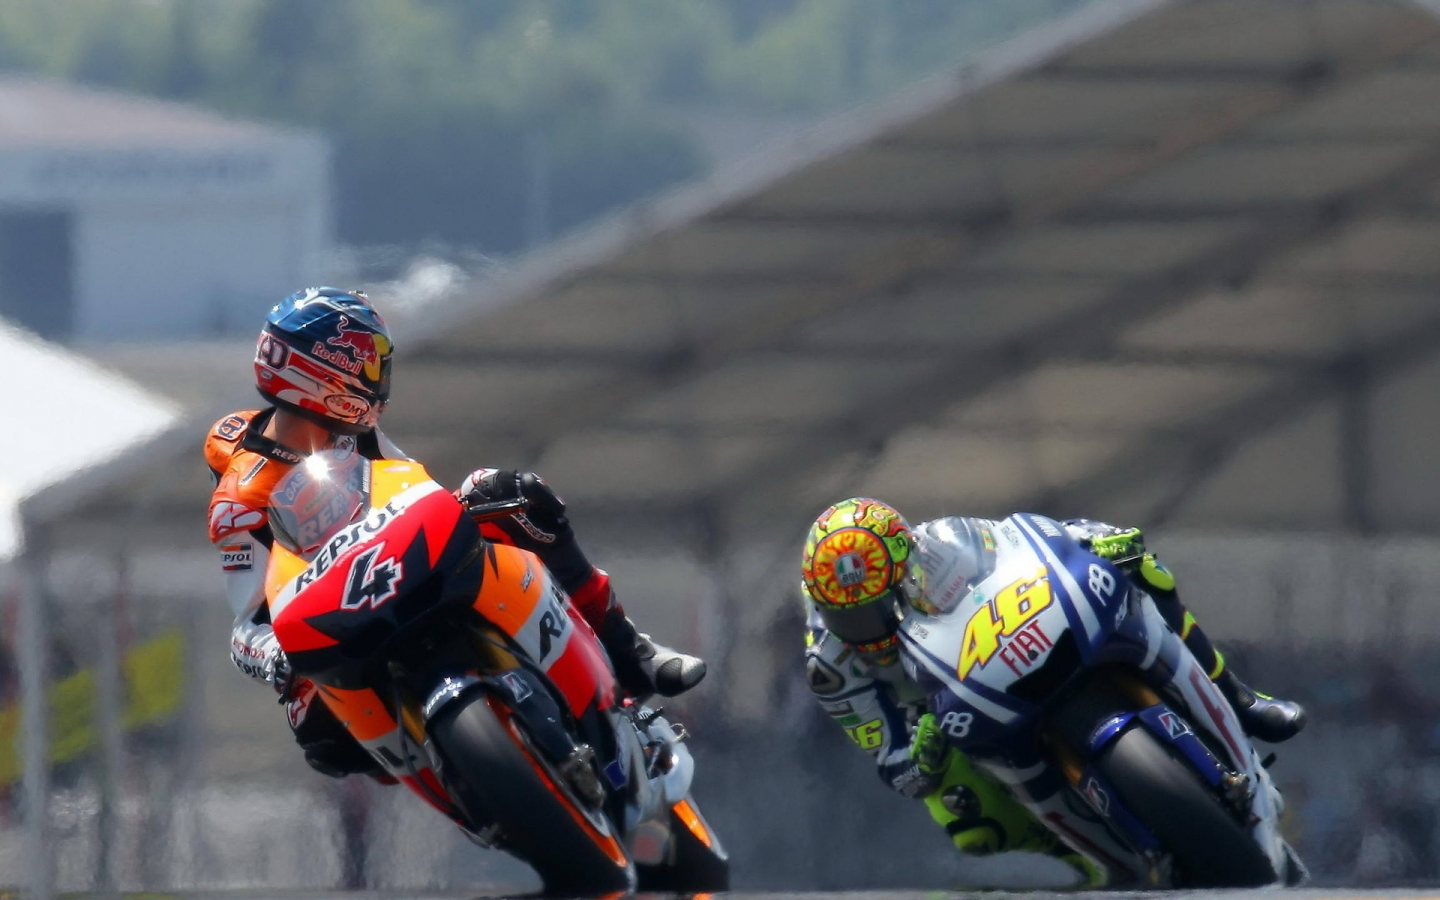 MotoGP Riders for 1440 x 900 widescreen resolution